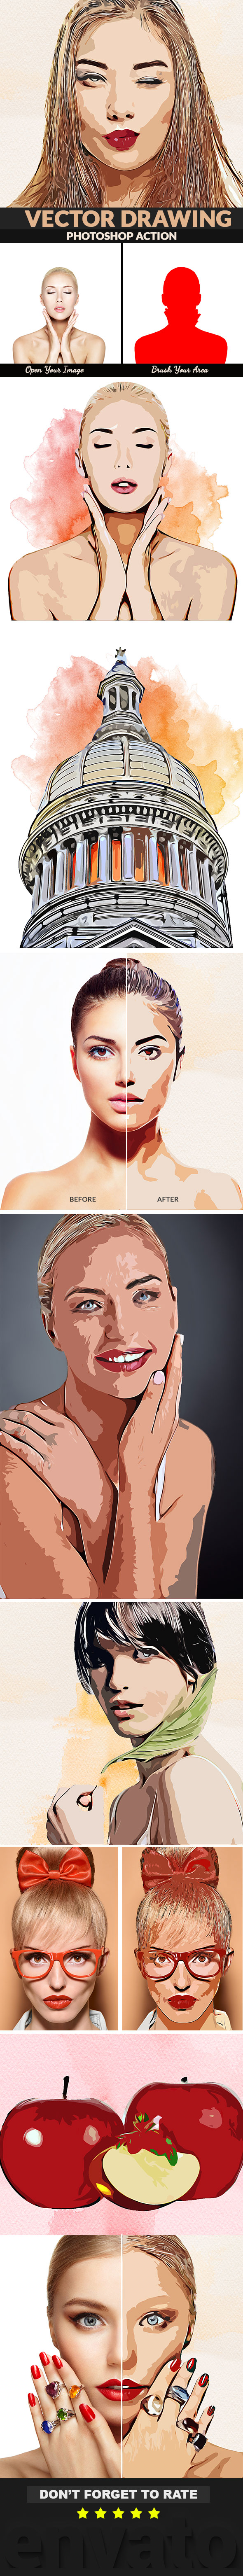 Vector Drawing Photoshop Action - Photo Effects Actions